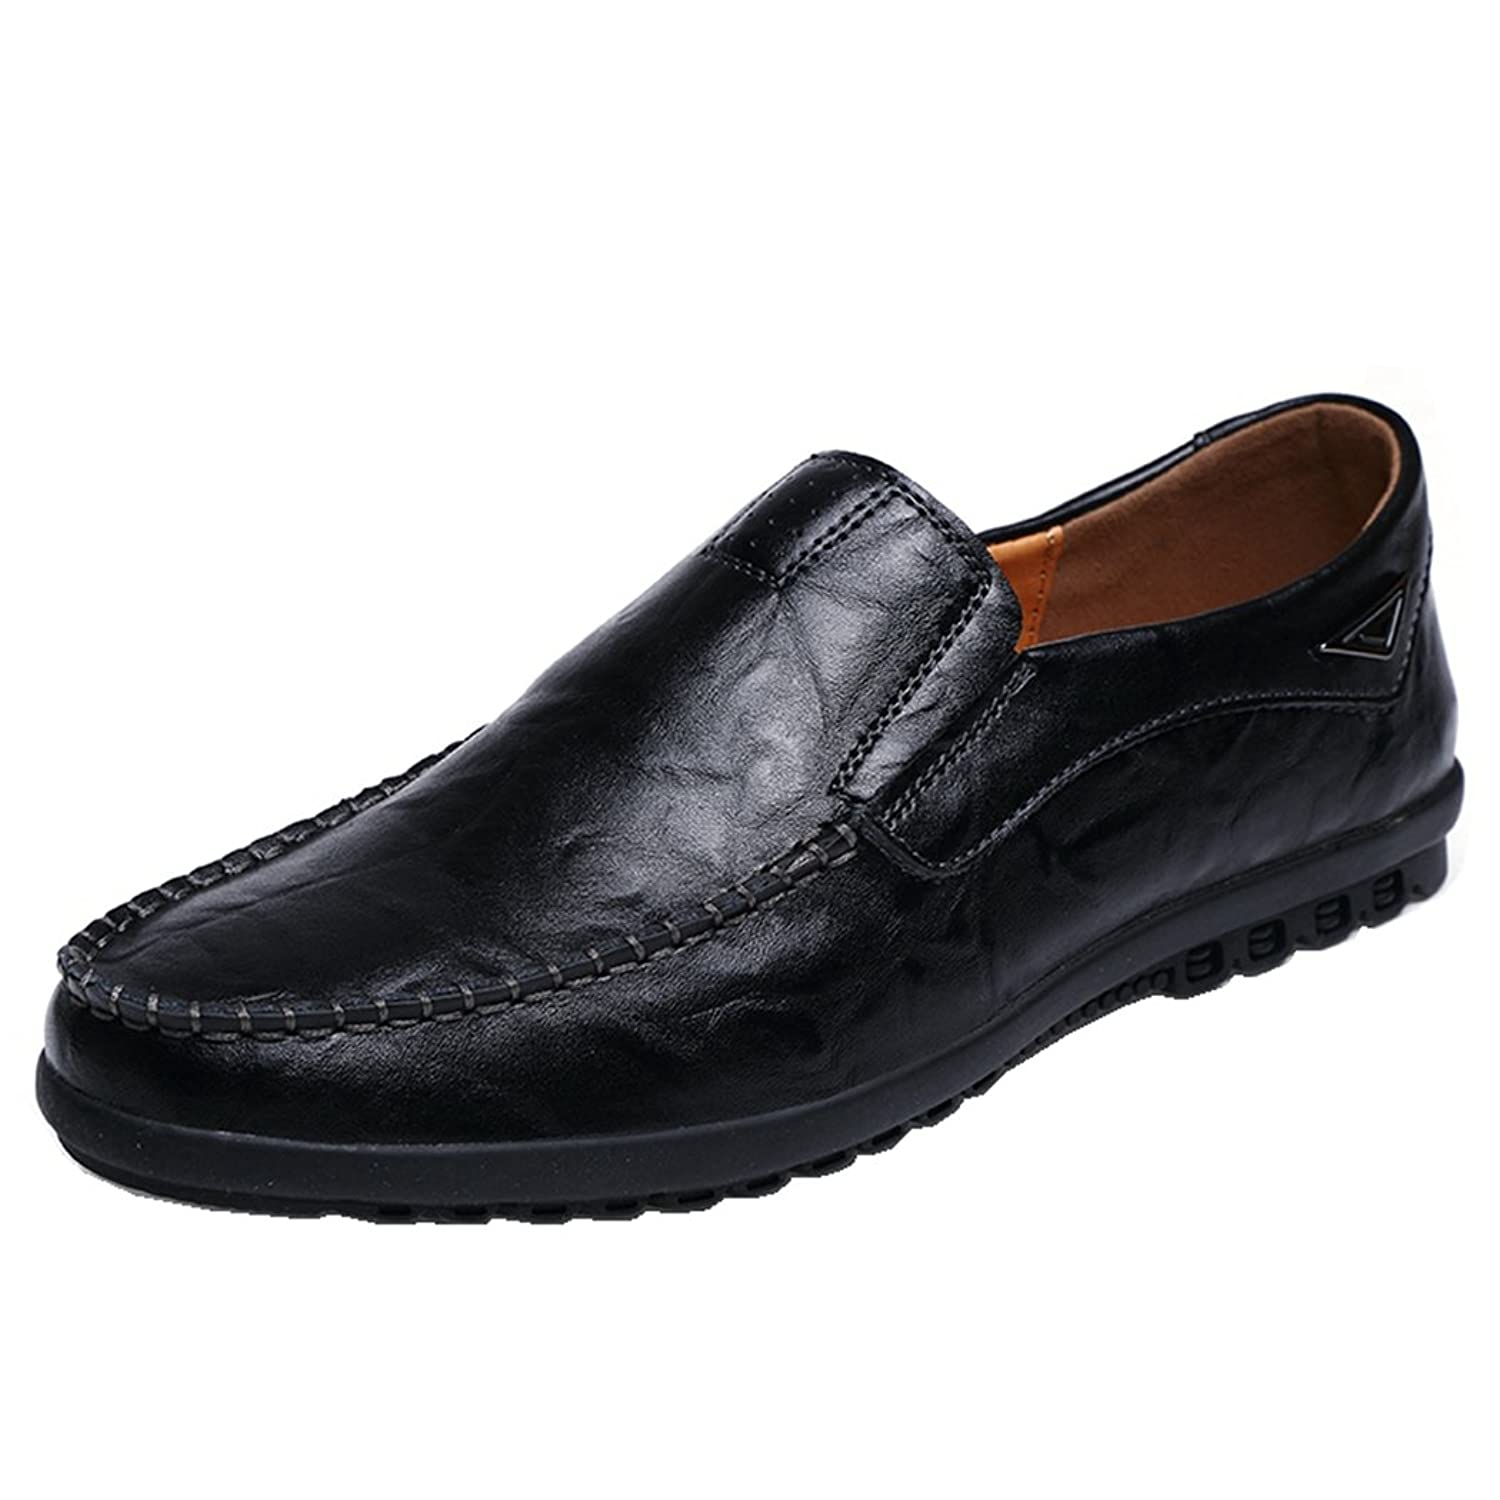 Men's Premium Genuine Leather Penny Slip On Loafer Casual Driver Shoes